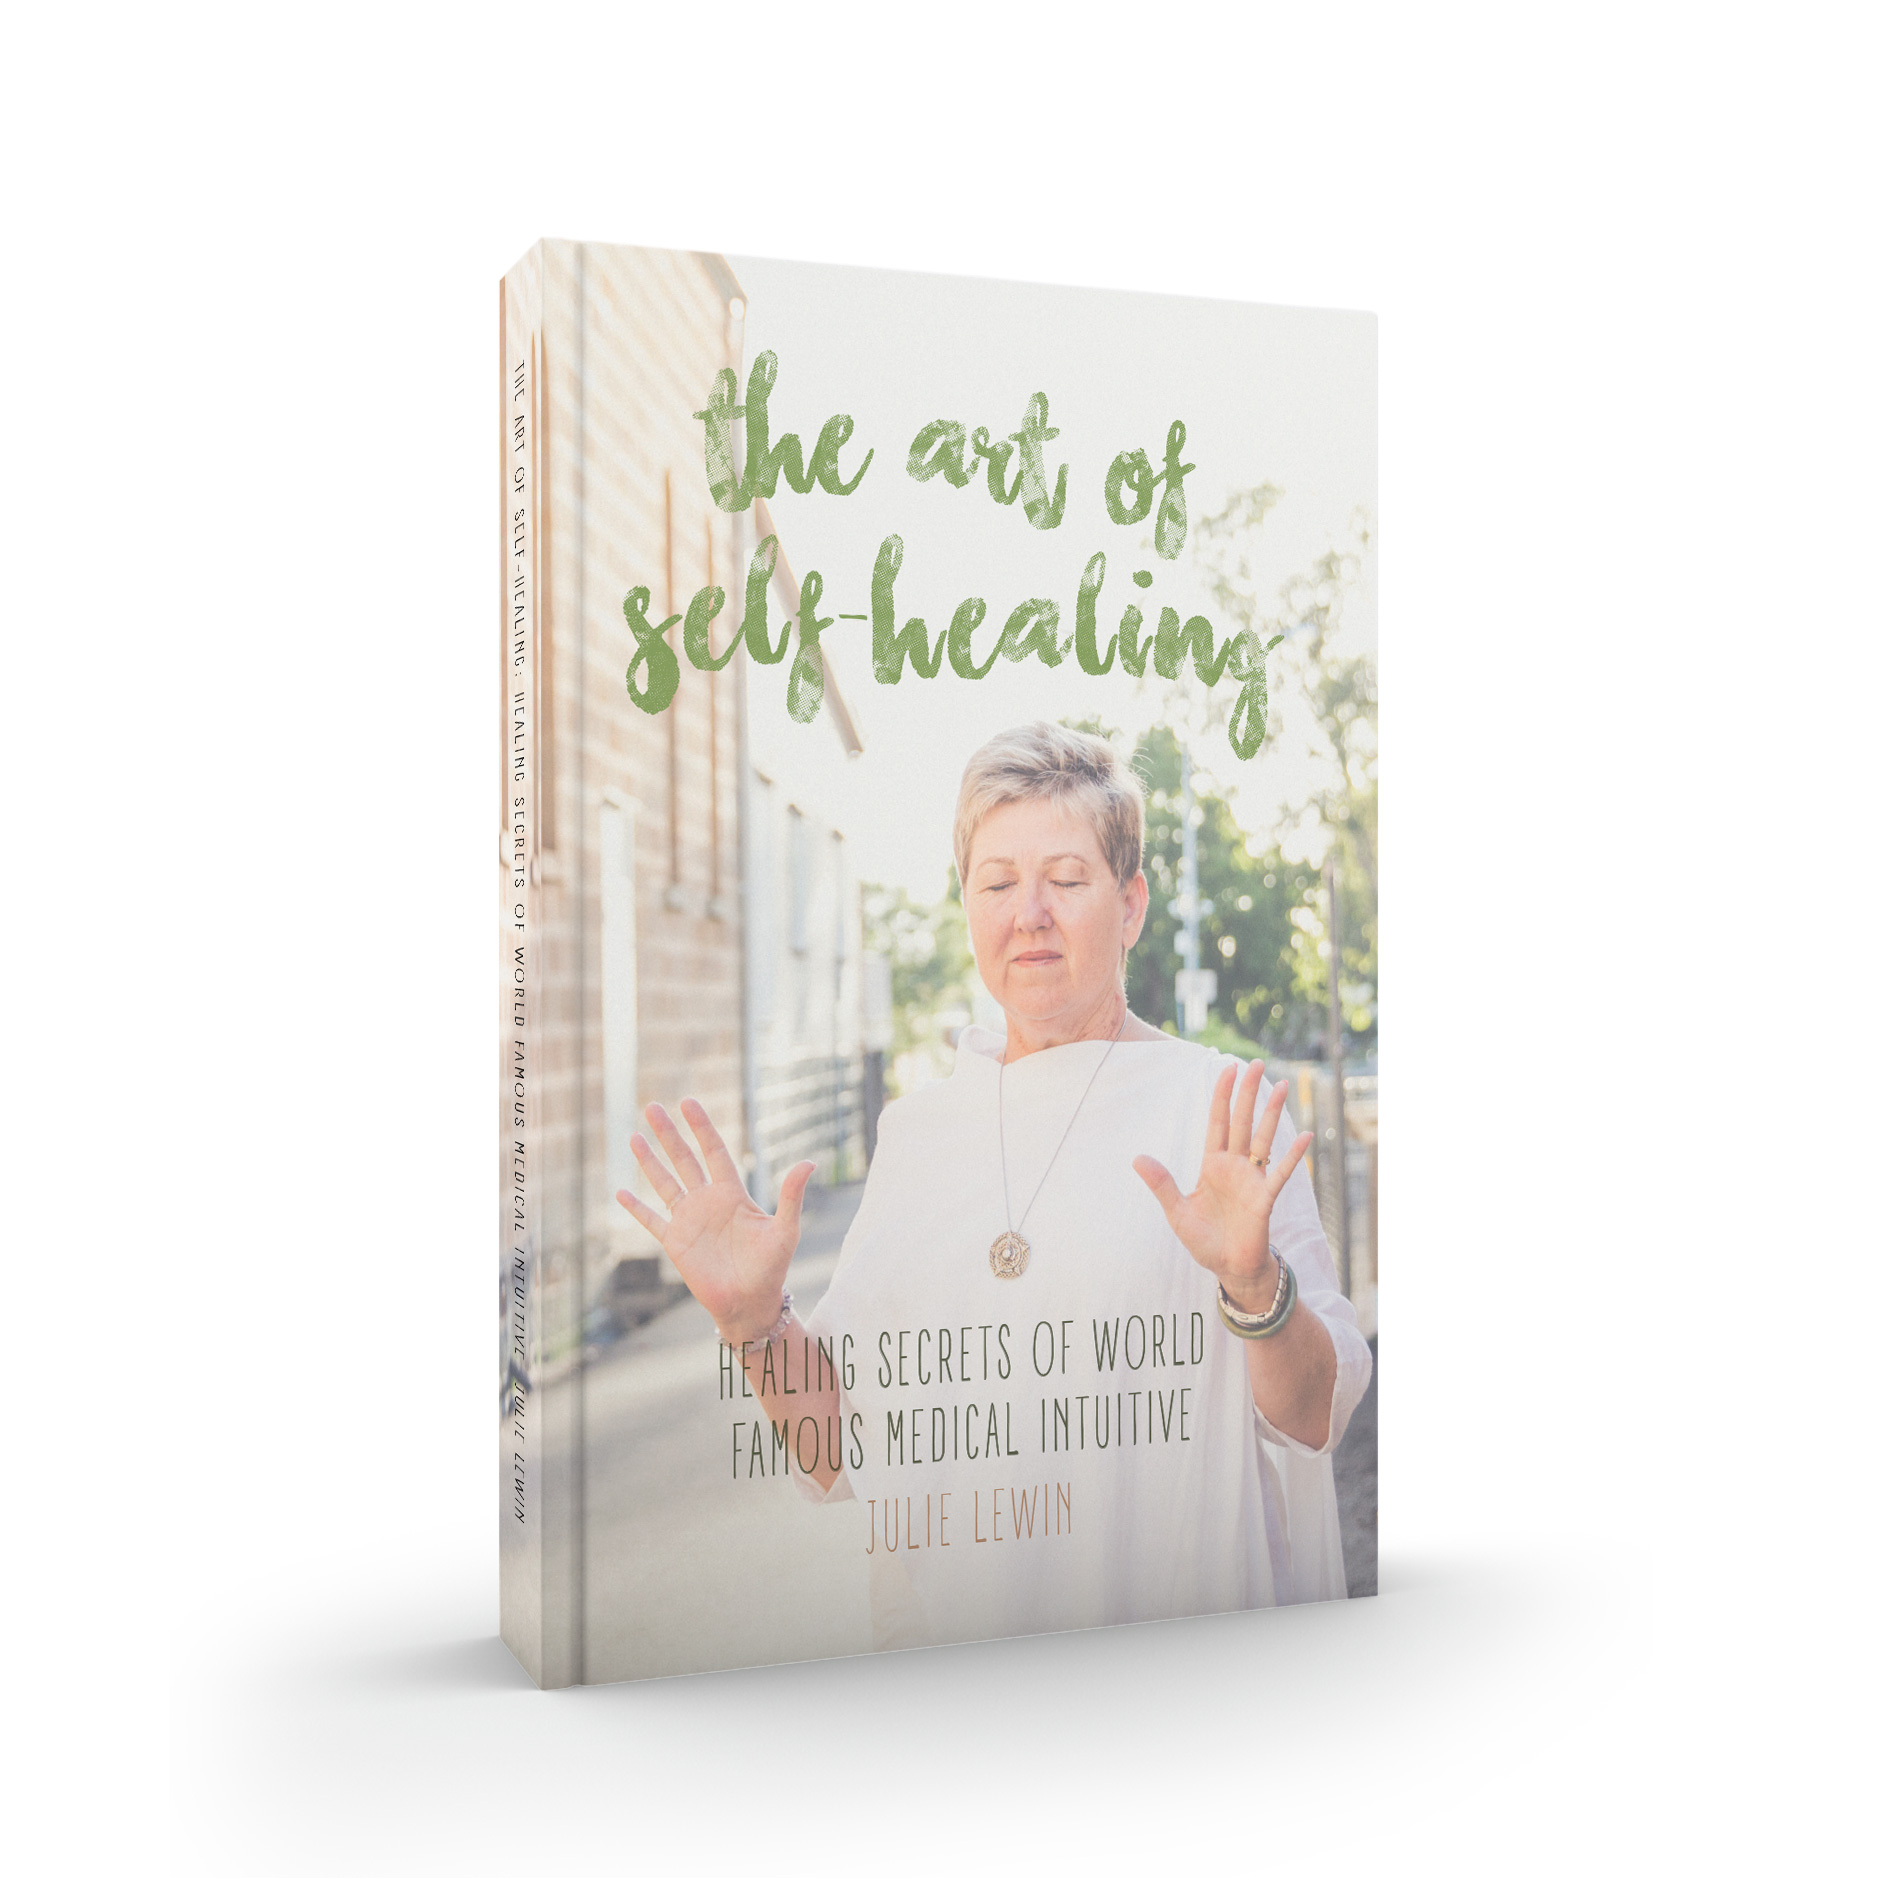 The Art of Self-Healing: Healing Secrets of World Famous Medical Intuitive Julie Lewin